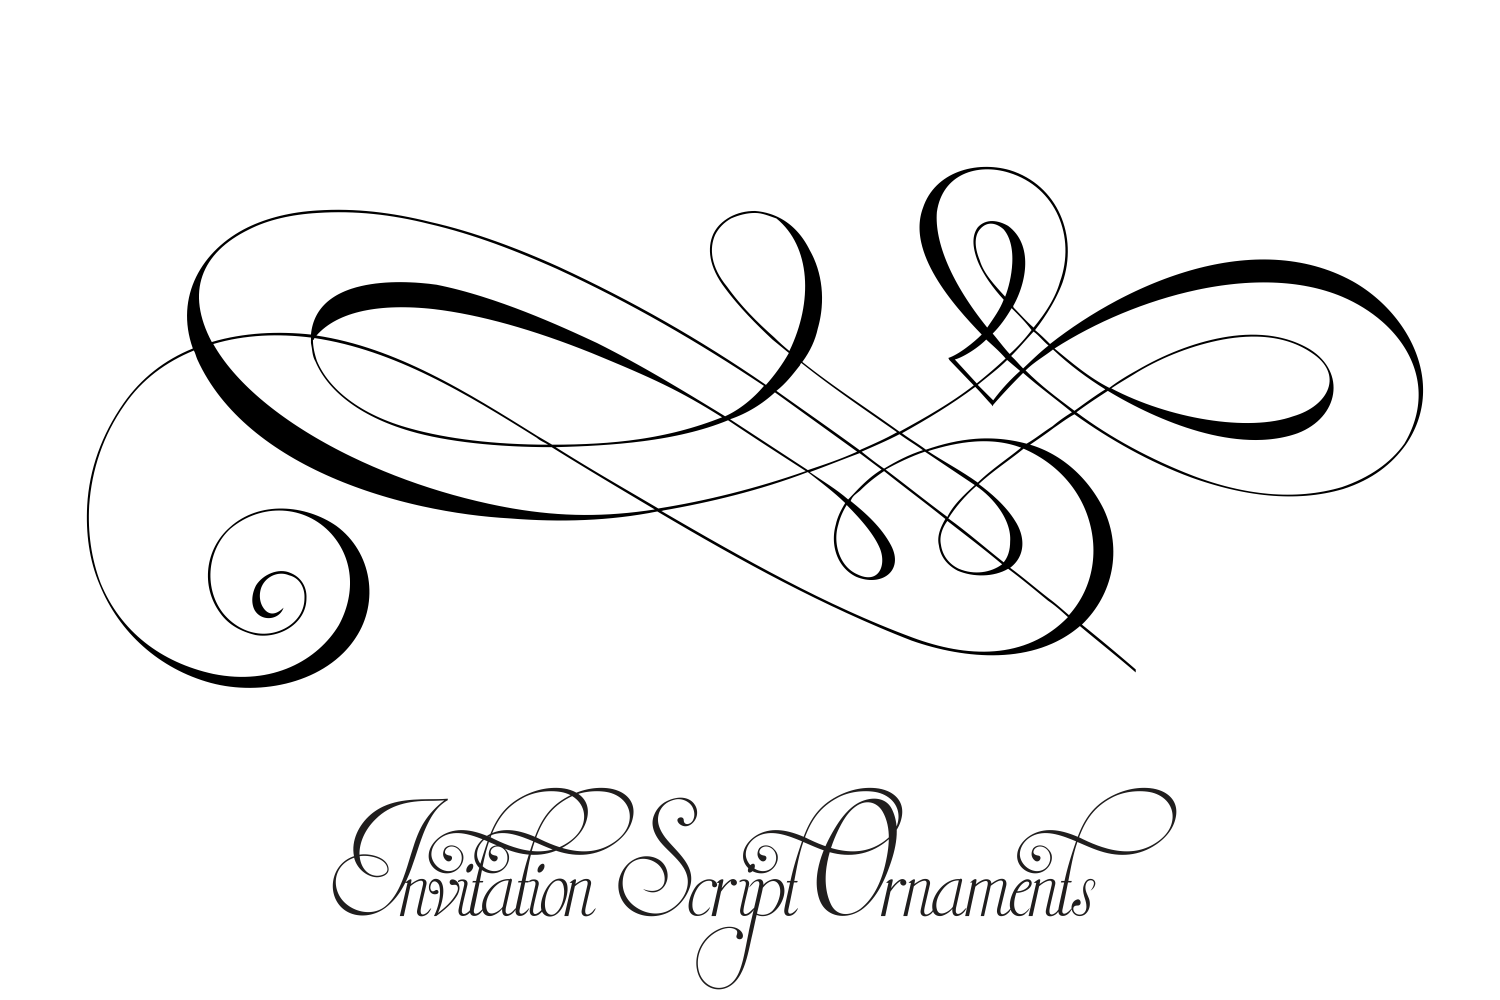 Invitation Script Ornaments  example image 5